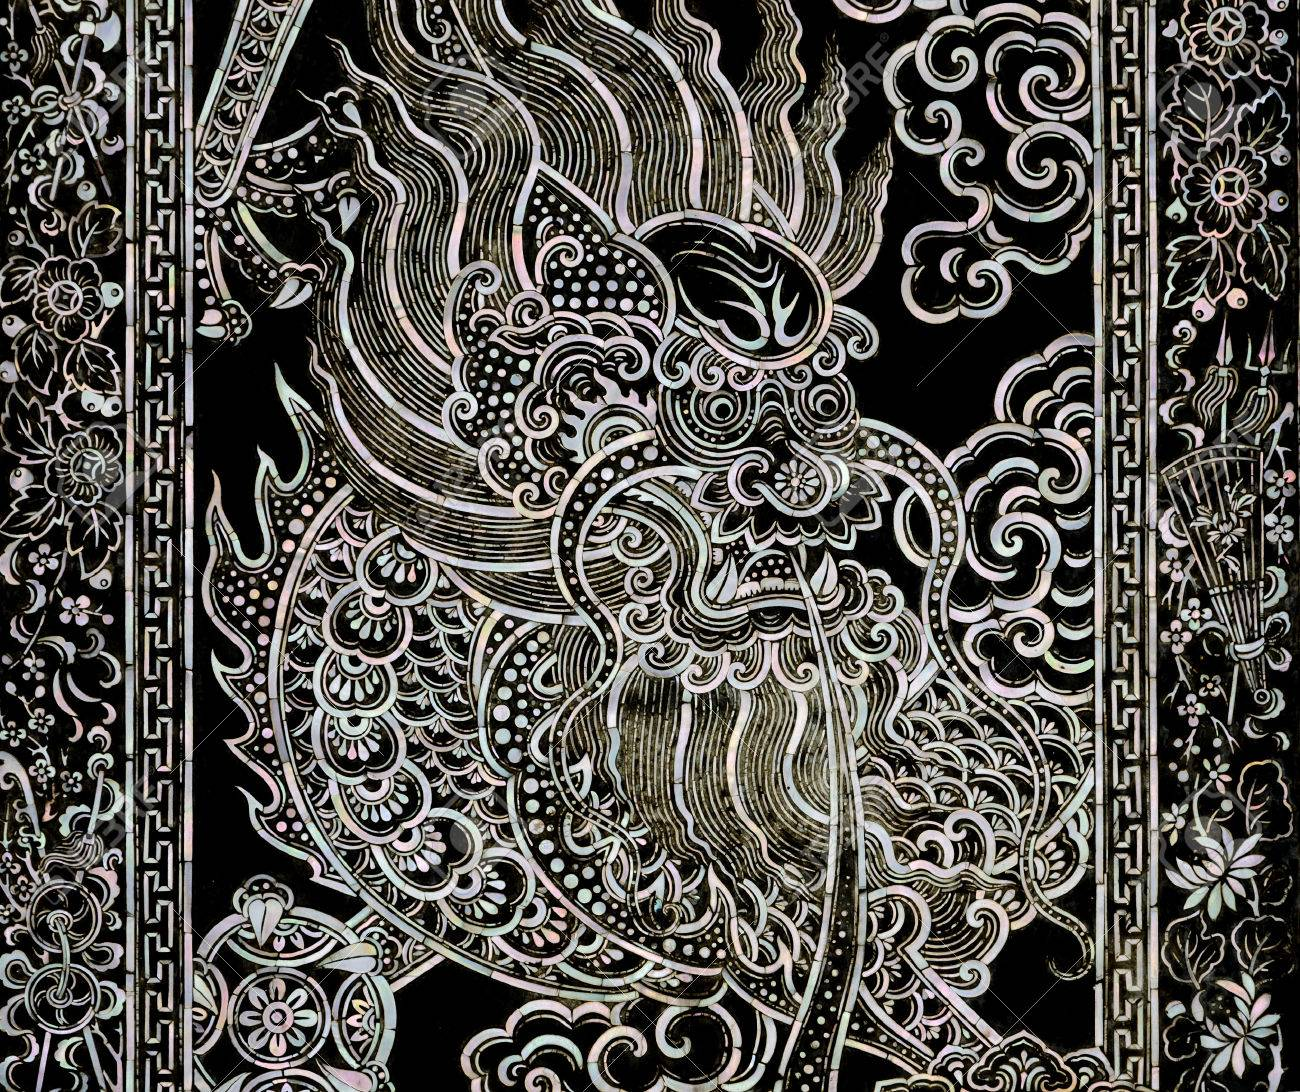 ancient chinese dragon art with mother of pearl inlay on temple